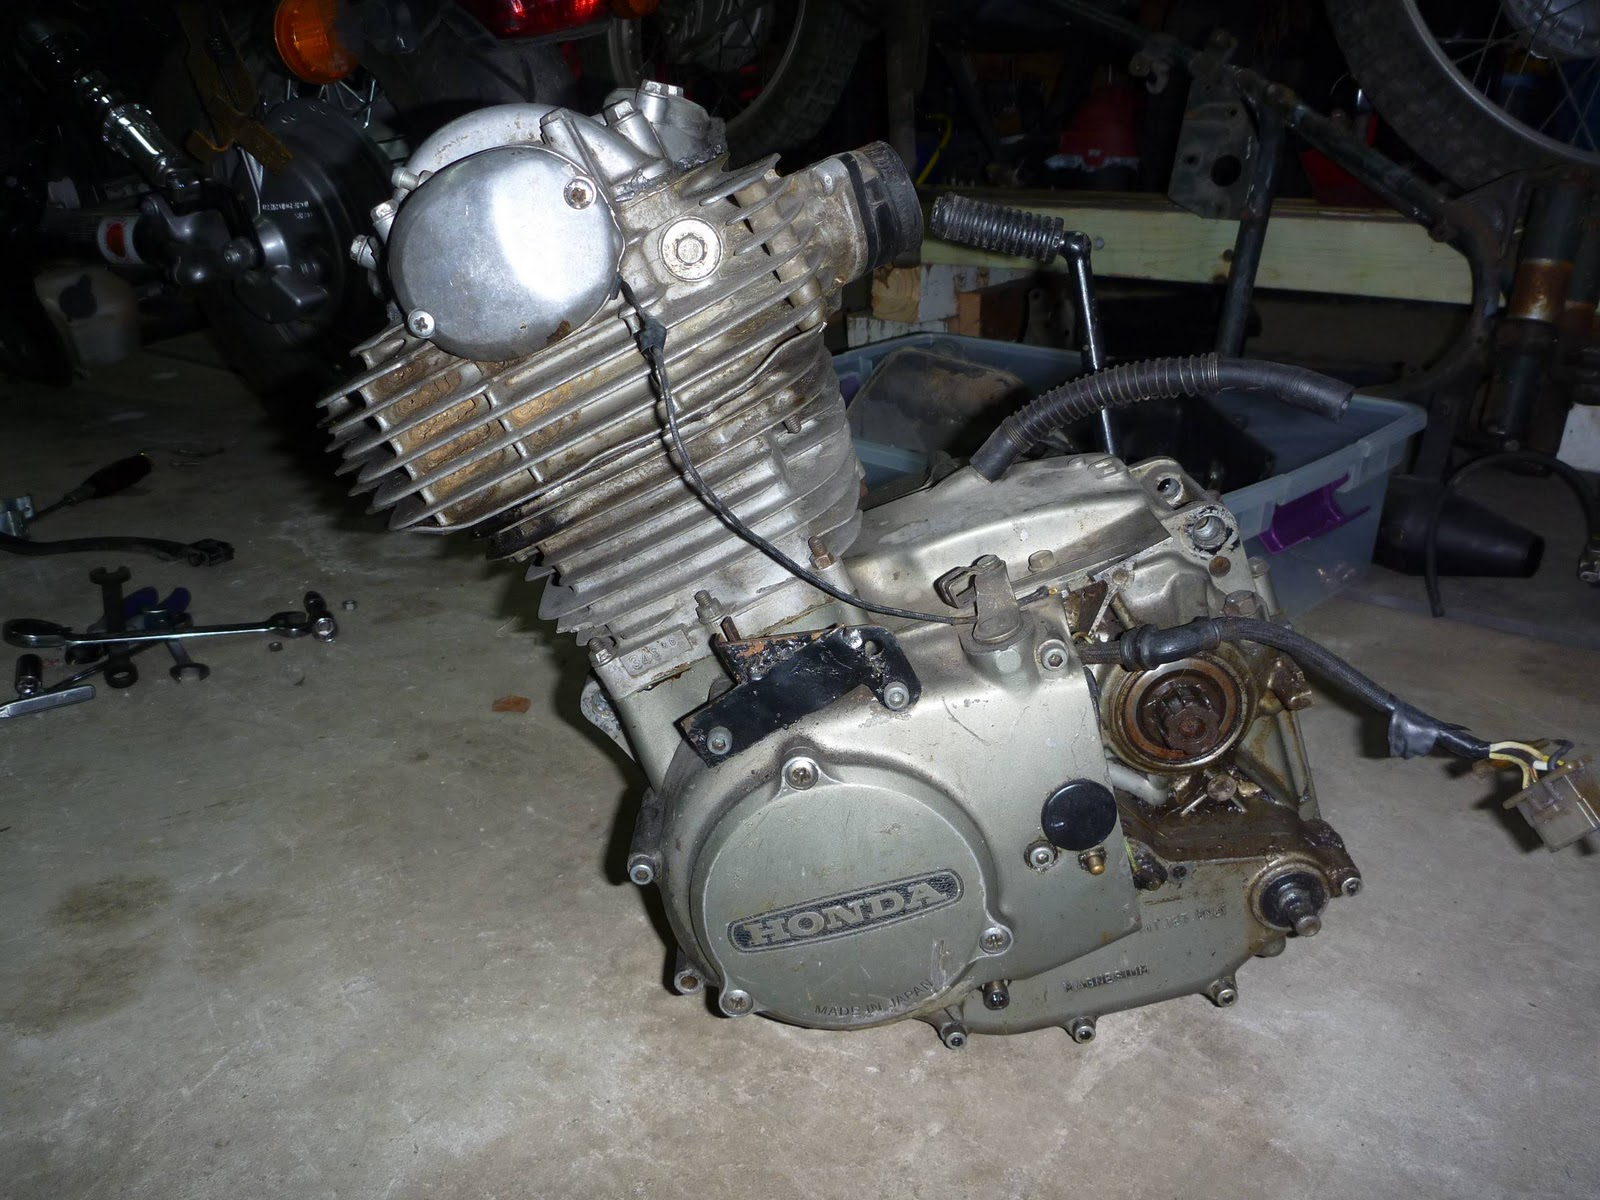 1974 Honda Xl350 Engine Removal on cb 750 engine rebuild